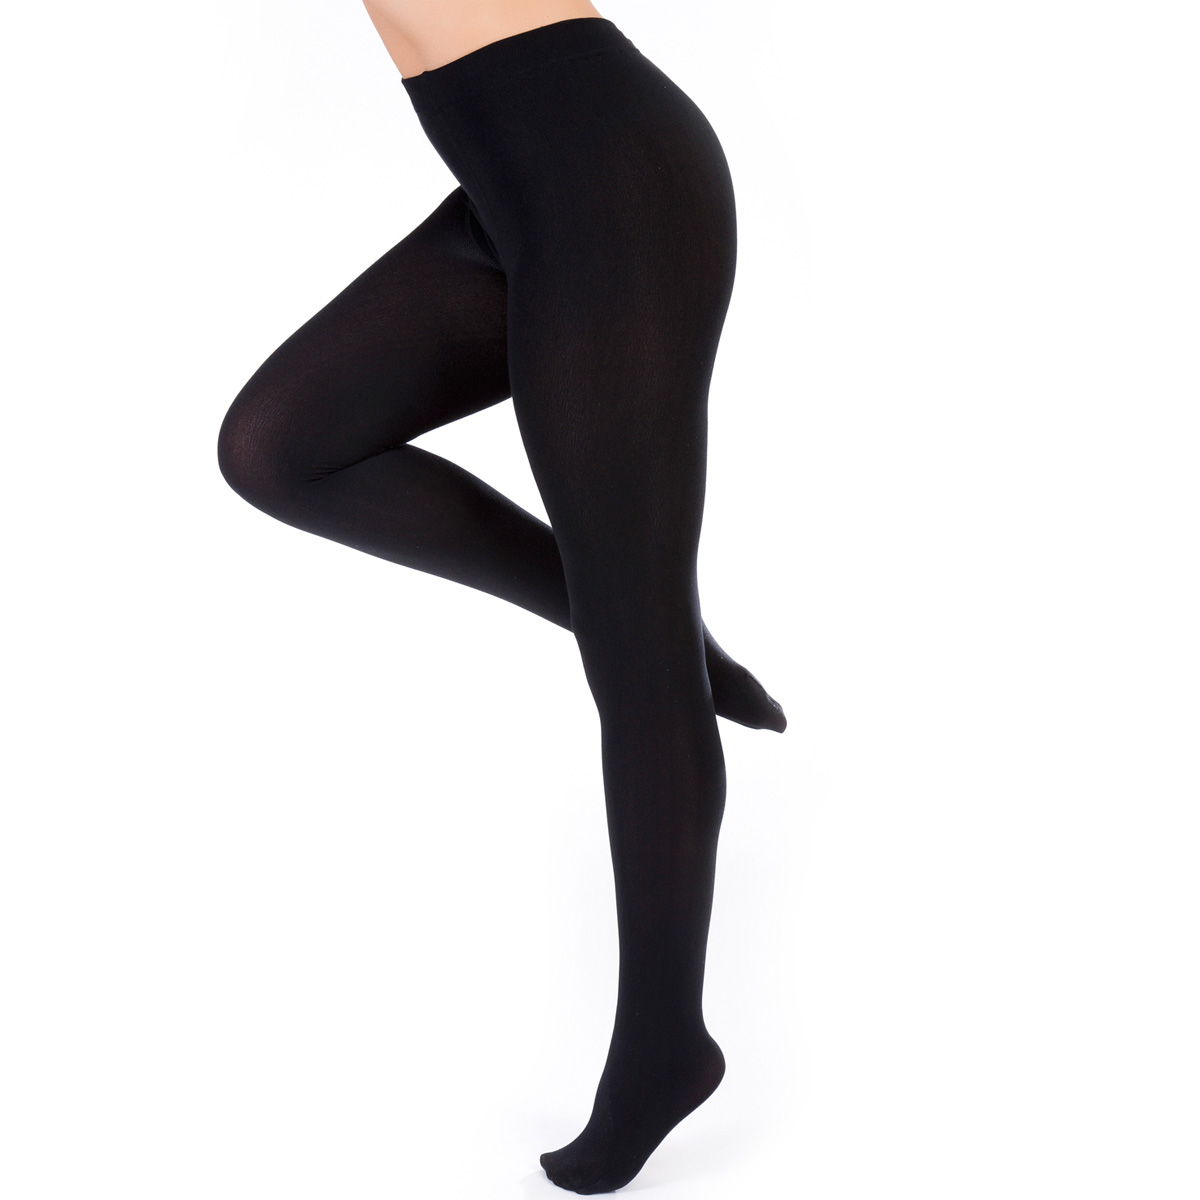 e2bfab03ec7 Details about Ladies Thick Winter Thermal Leggings Black